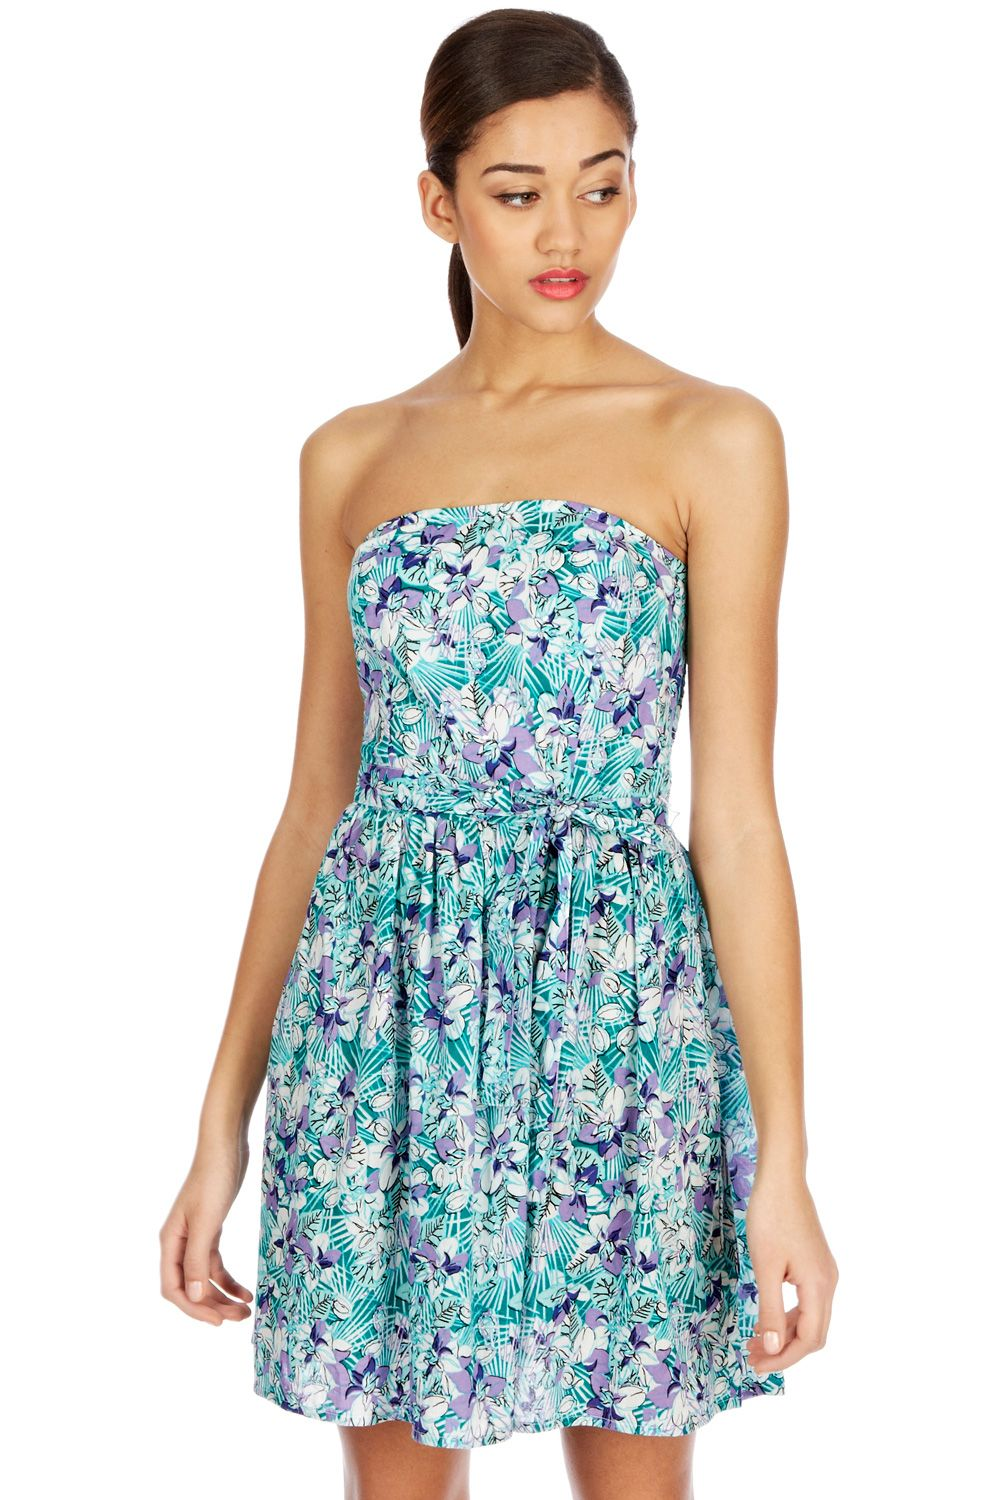 Fern print fit and flare sundress